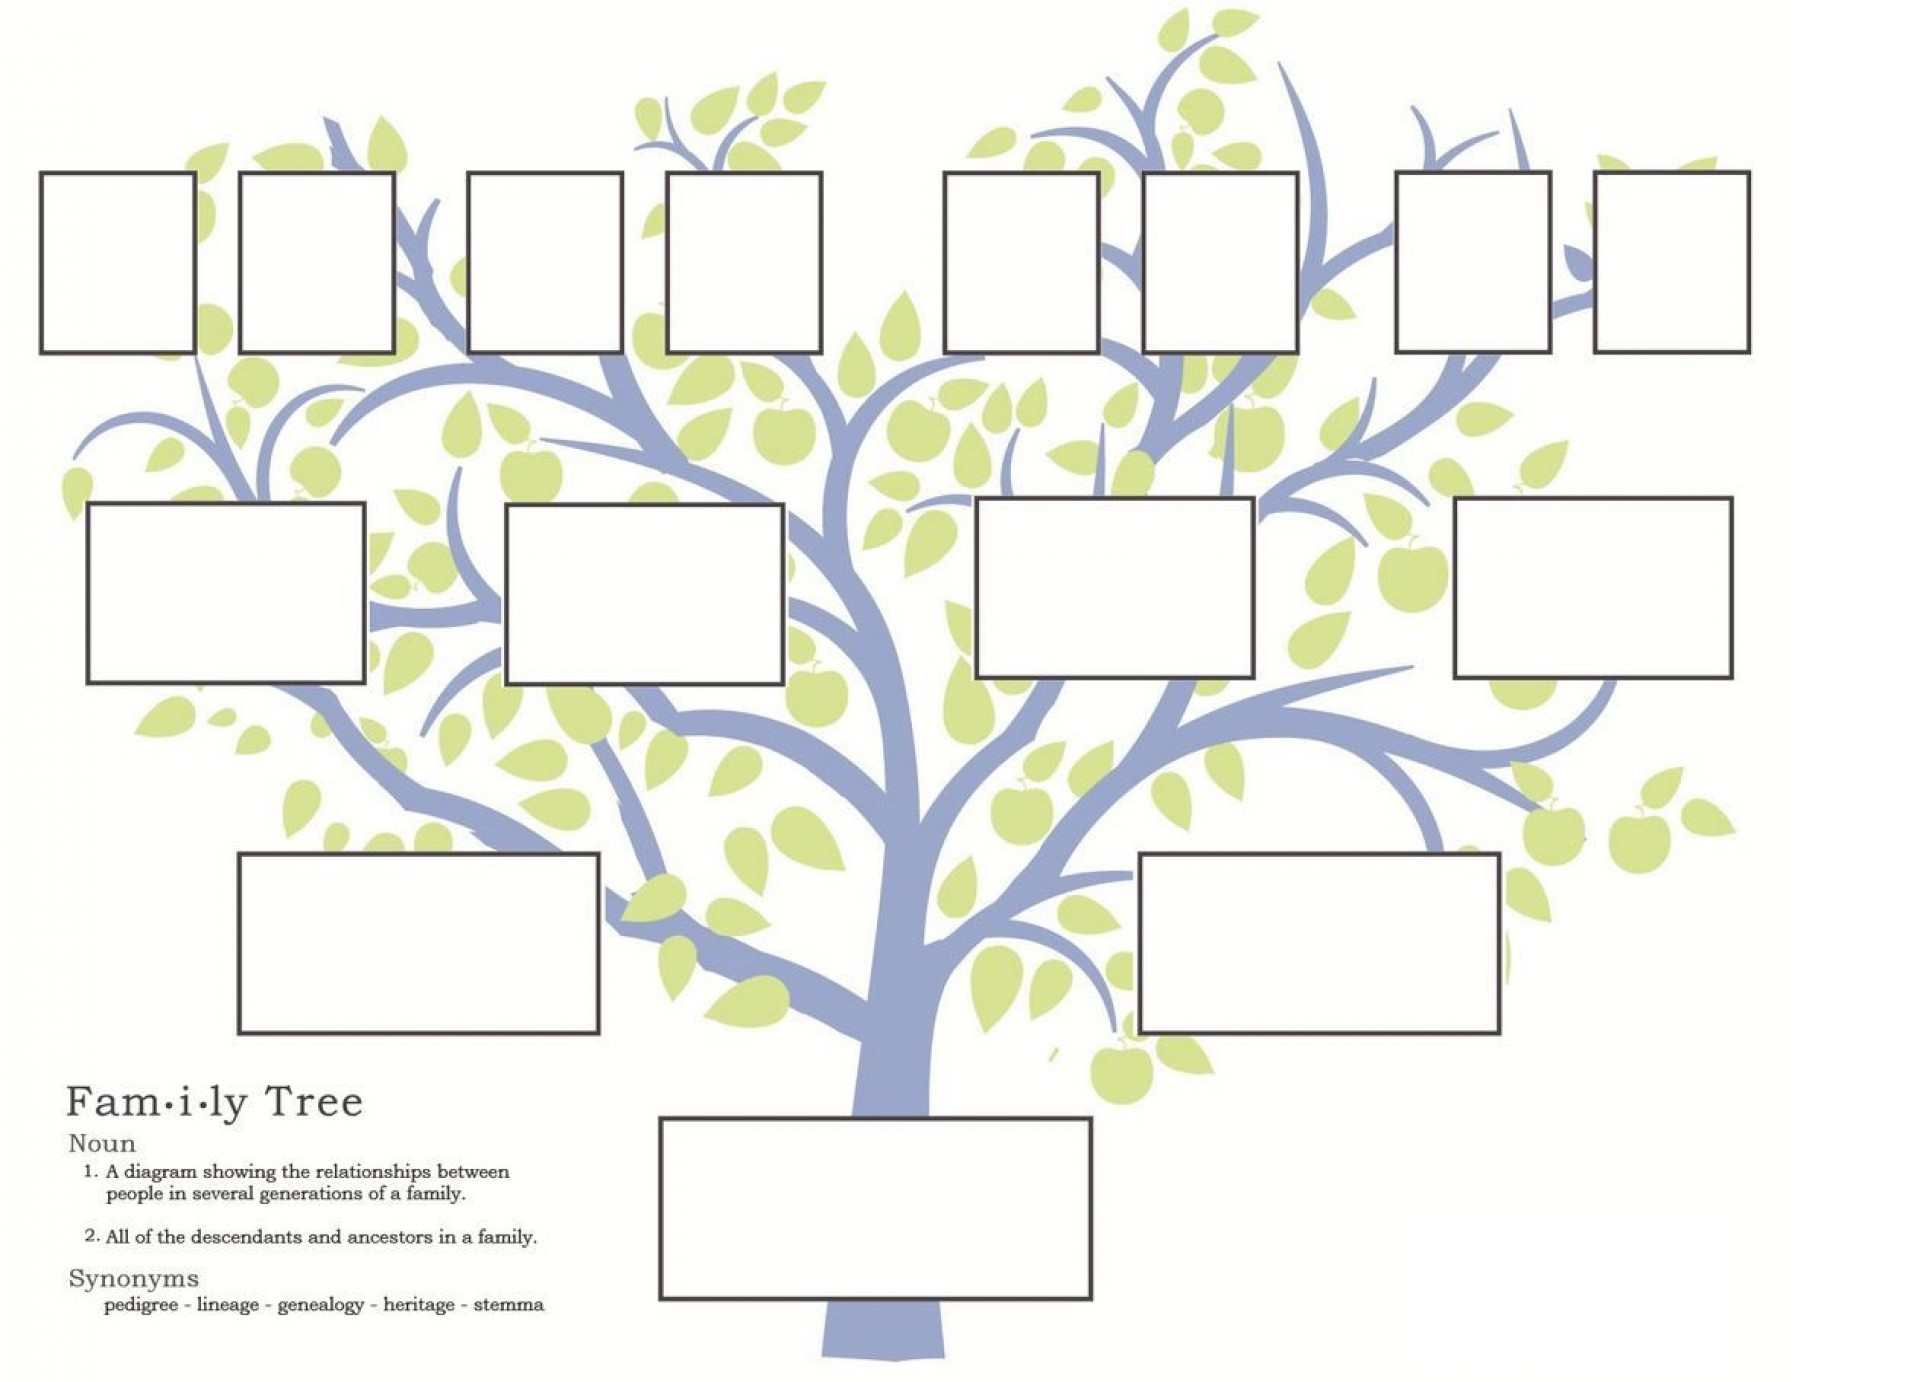 005 Incredible Free Editable Family Tree Template With Sibling Picture  Siblings1920